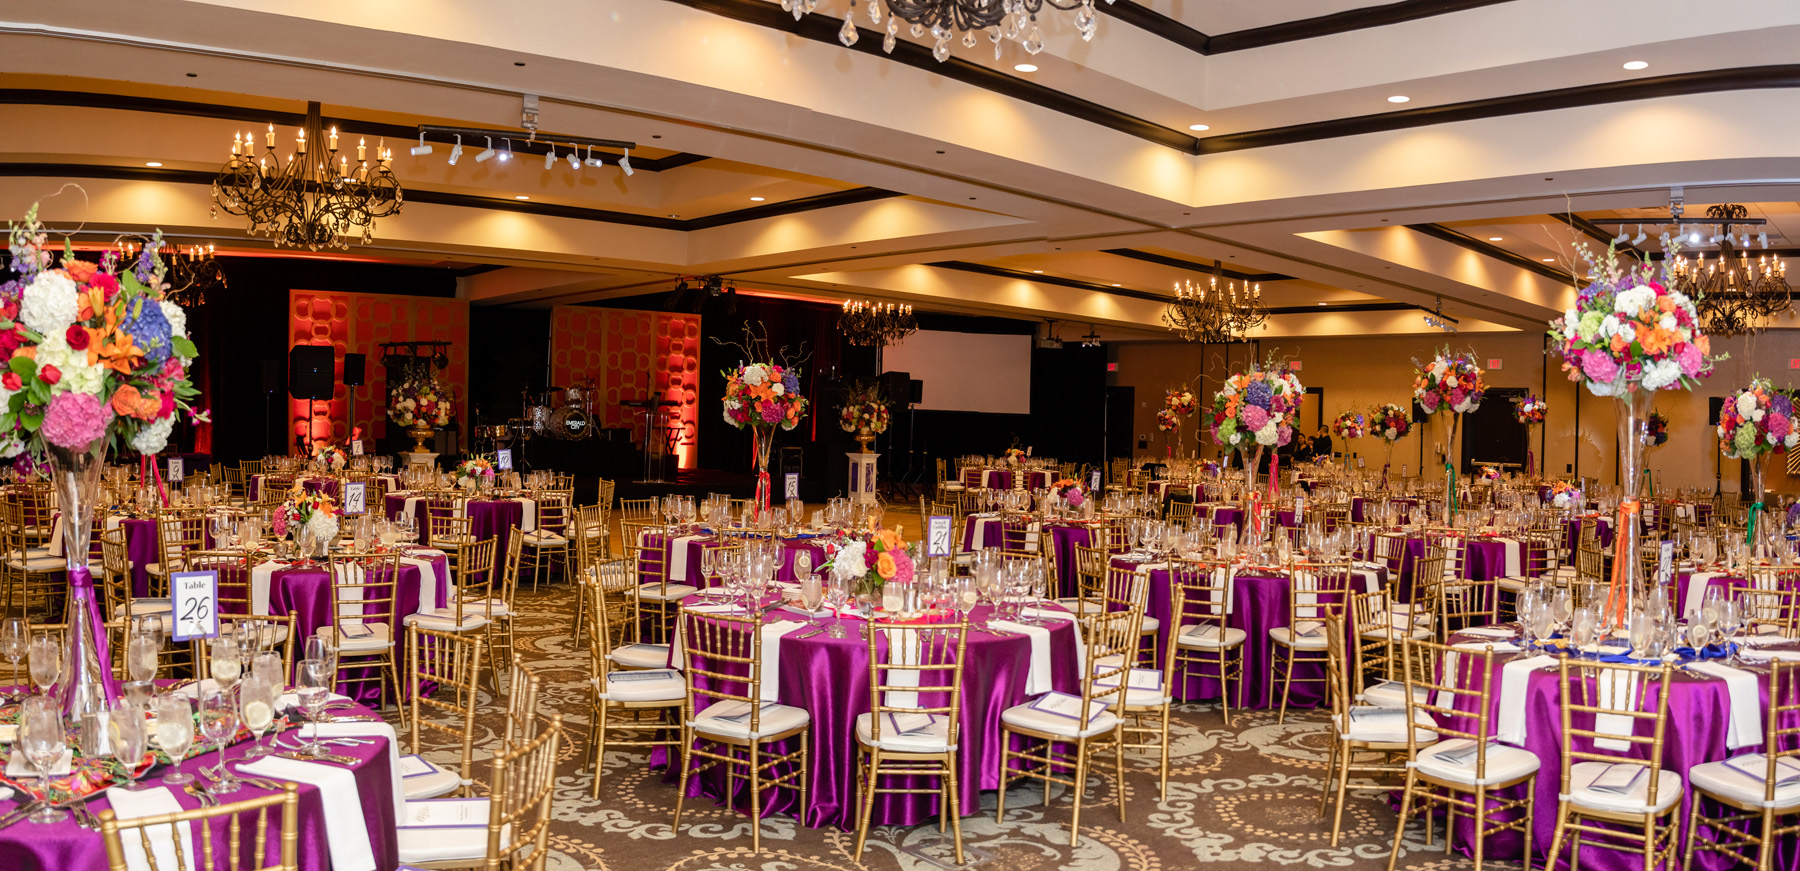 Kids Matter Charity Ball by Monika Normand Photography